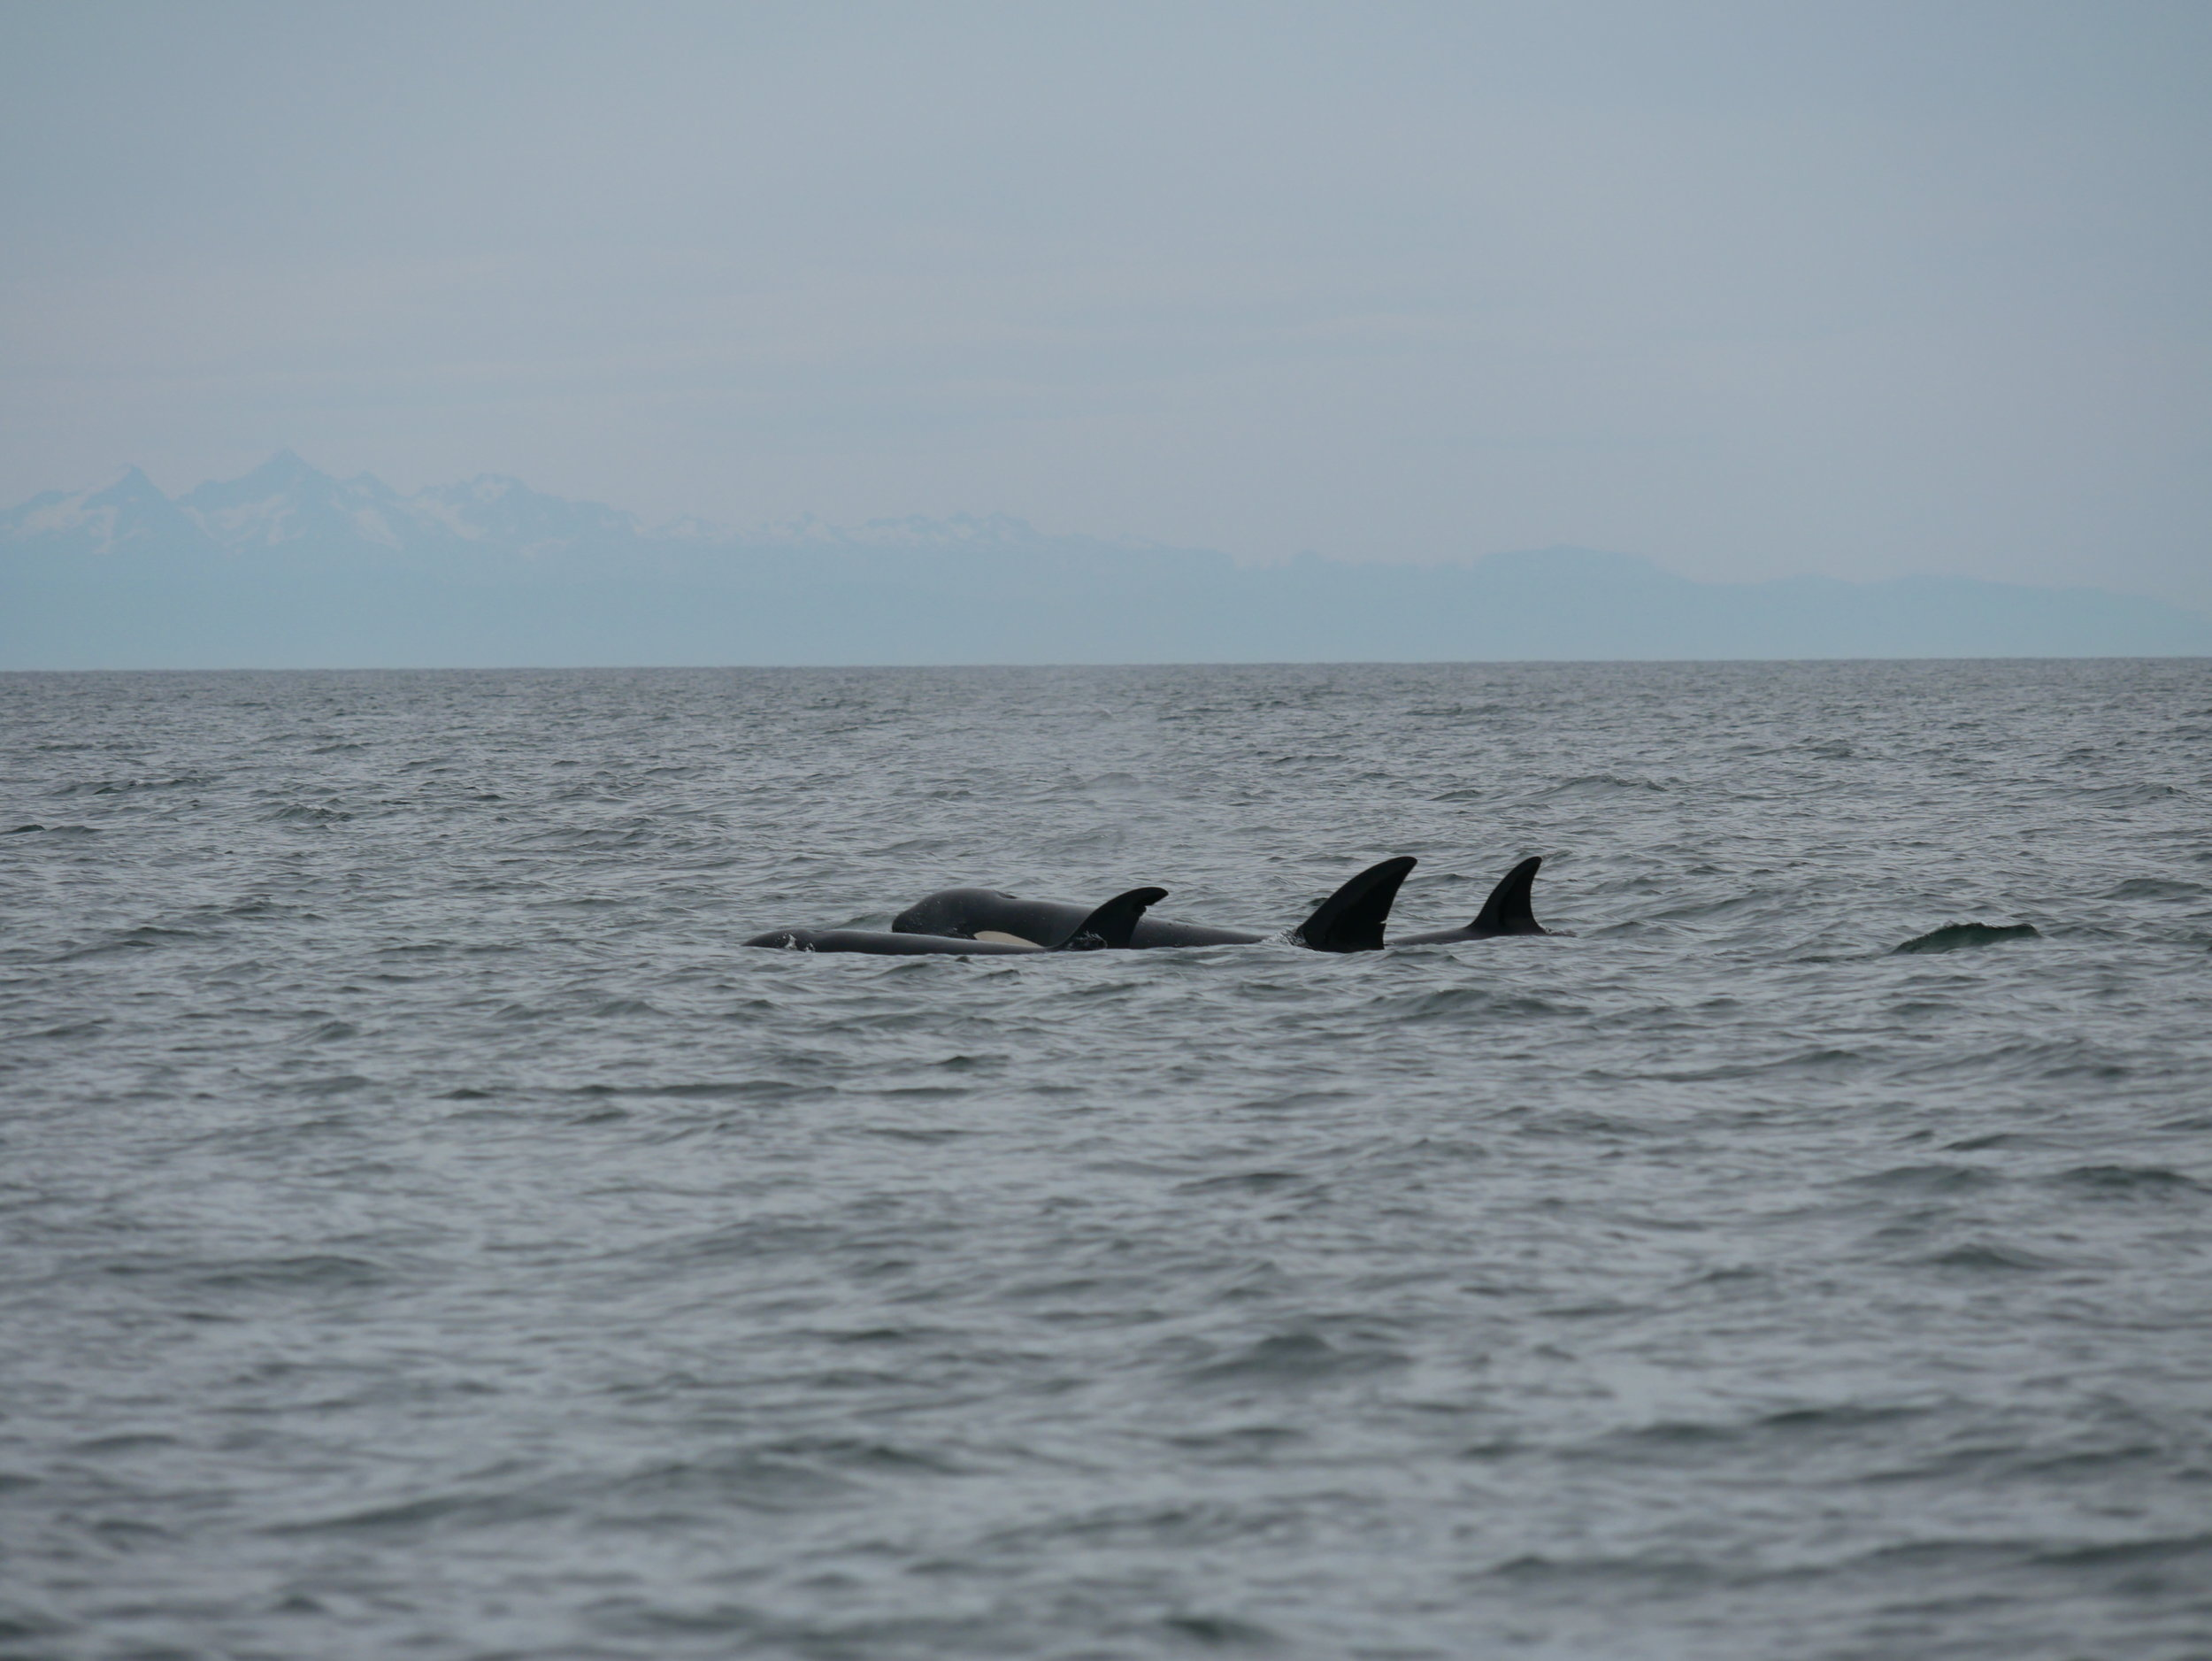 So many whales! Photo by Alanna Vivani